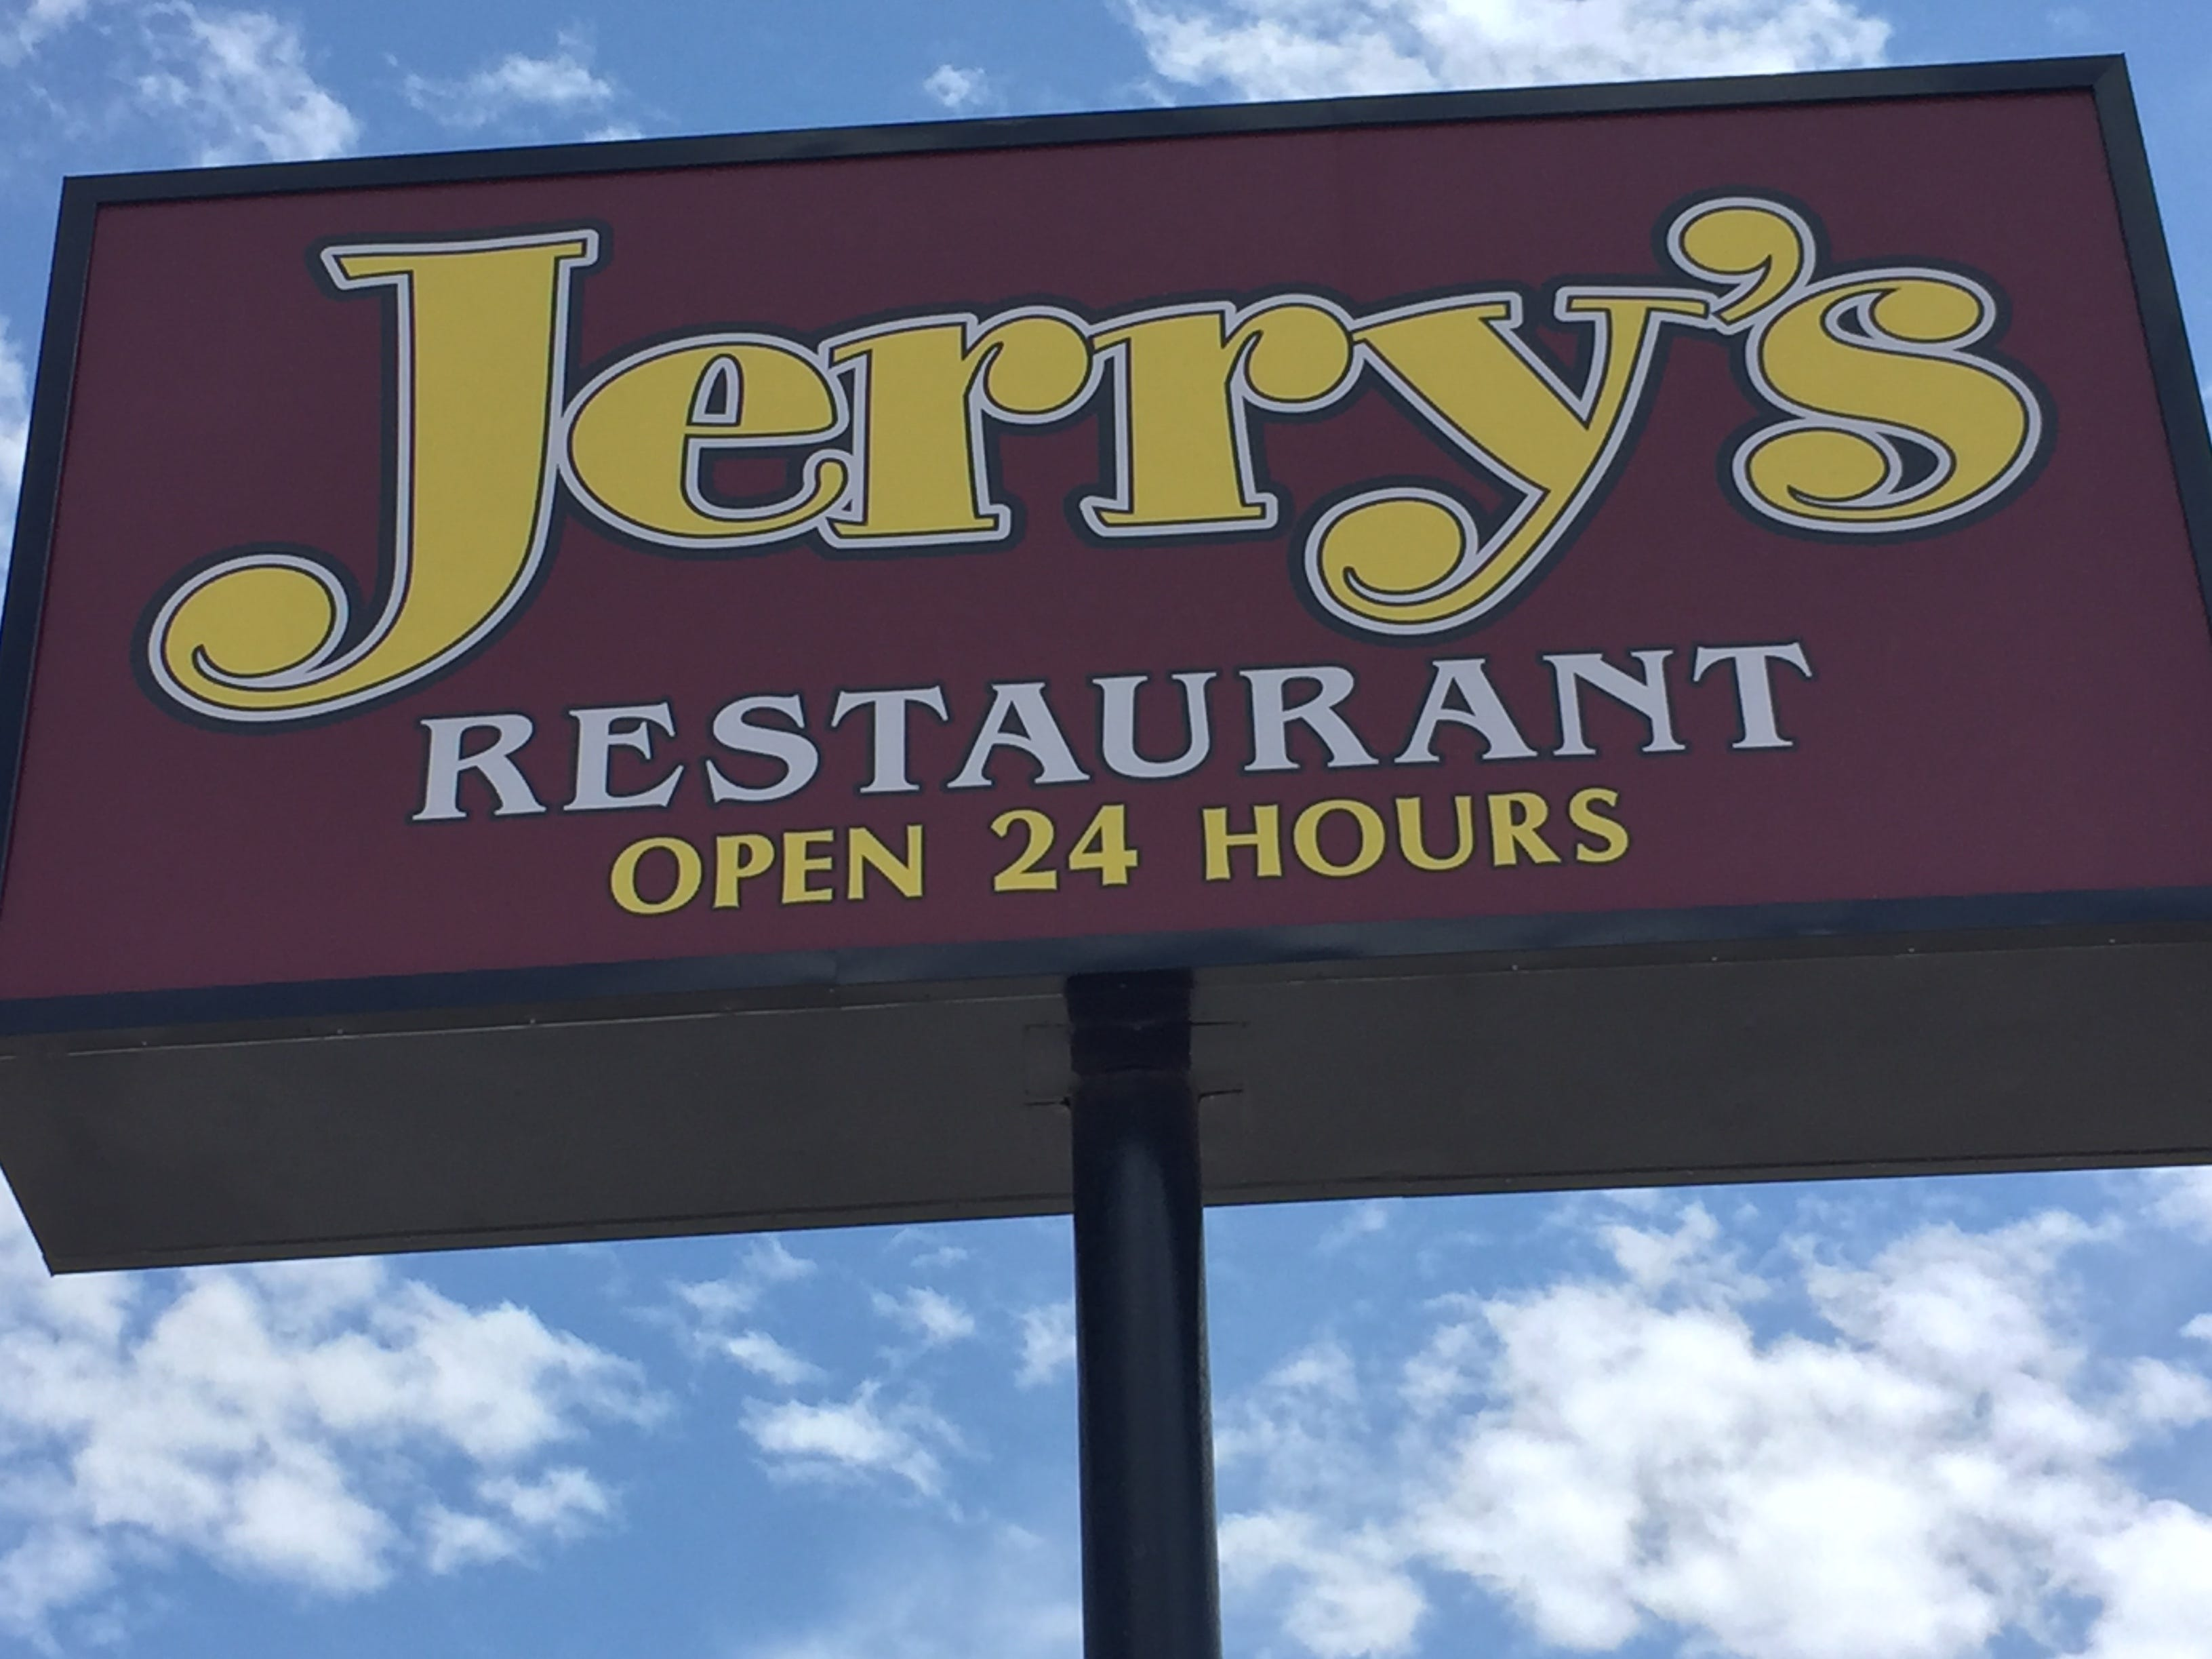 Where Harley riders eat, Day 3 (lunch stop in Weatherford, Okla.): Jerry's Restaurant, a diner with a big counter and booths and tables.  - Breakfast served all day.